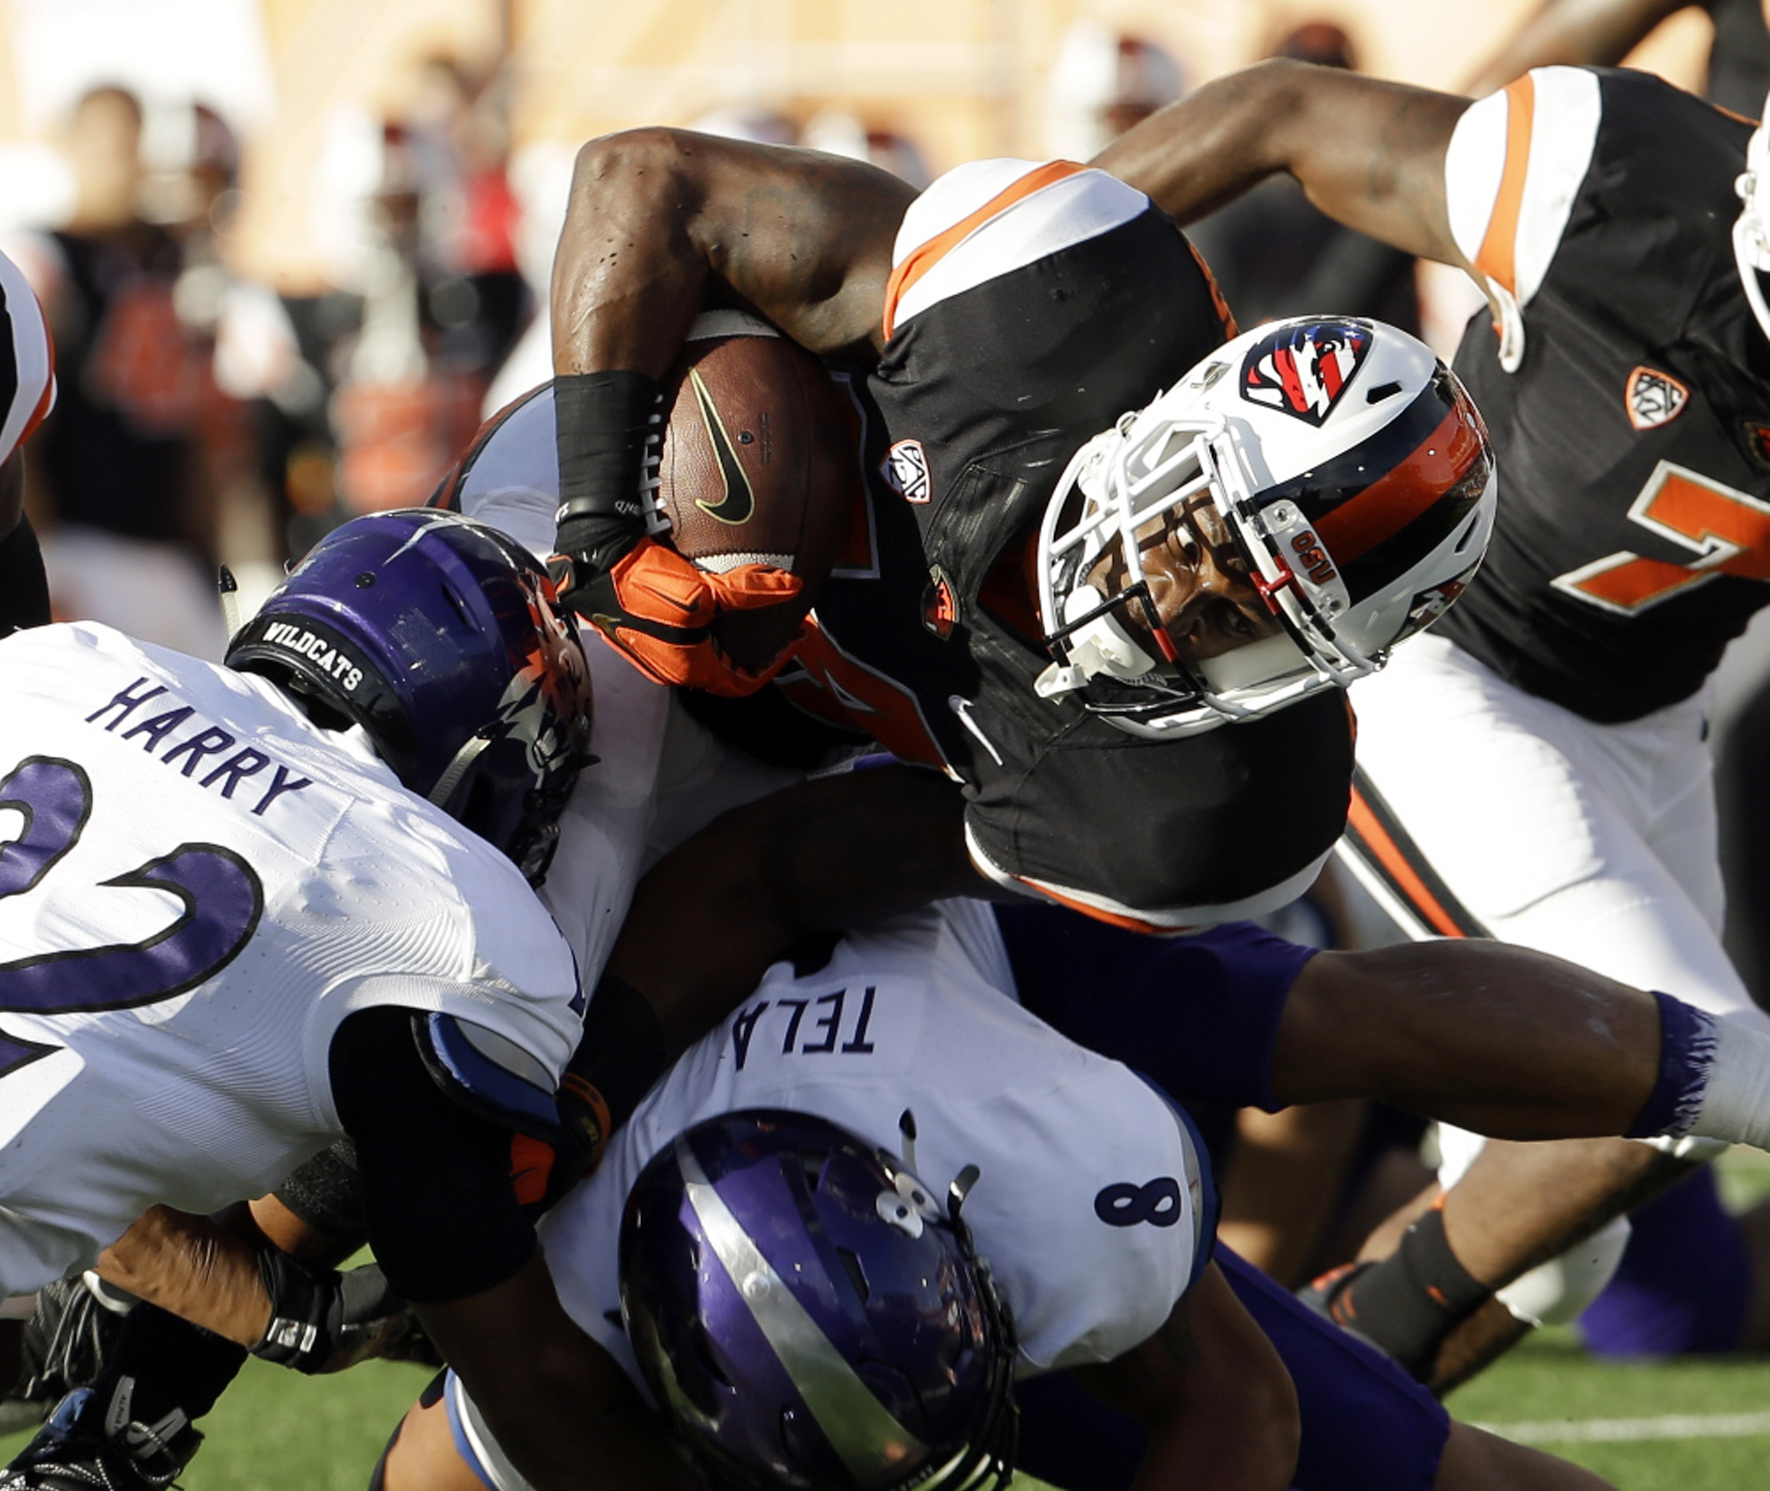 FILE - In this Sept. 4, 2015, file photo, Oregon State running back Storm Woods, top, carries against Weber State cornerback Xequille Harry (22) and Emmett Tela (8) during the first half of an NCAA college football game in Corvallis, Ore. Woods came alive